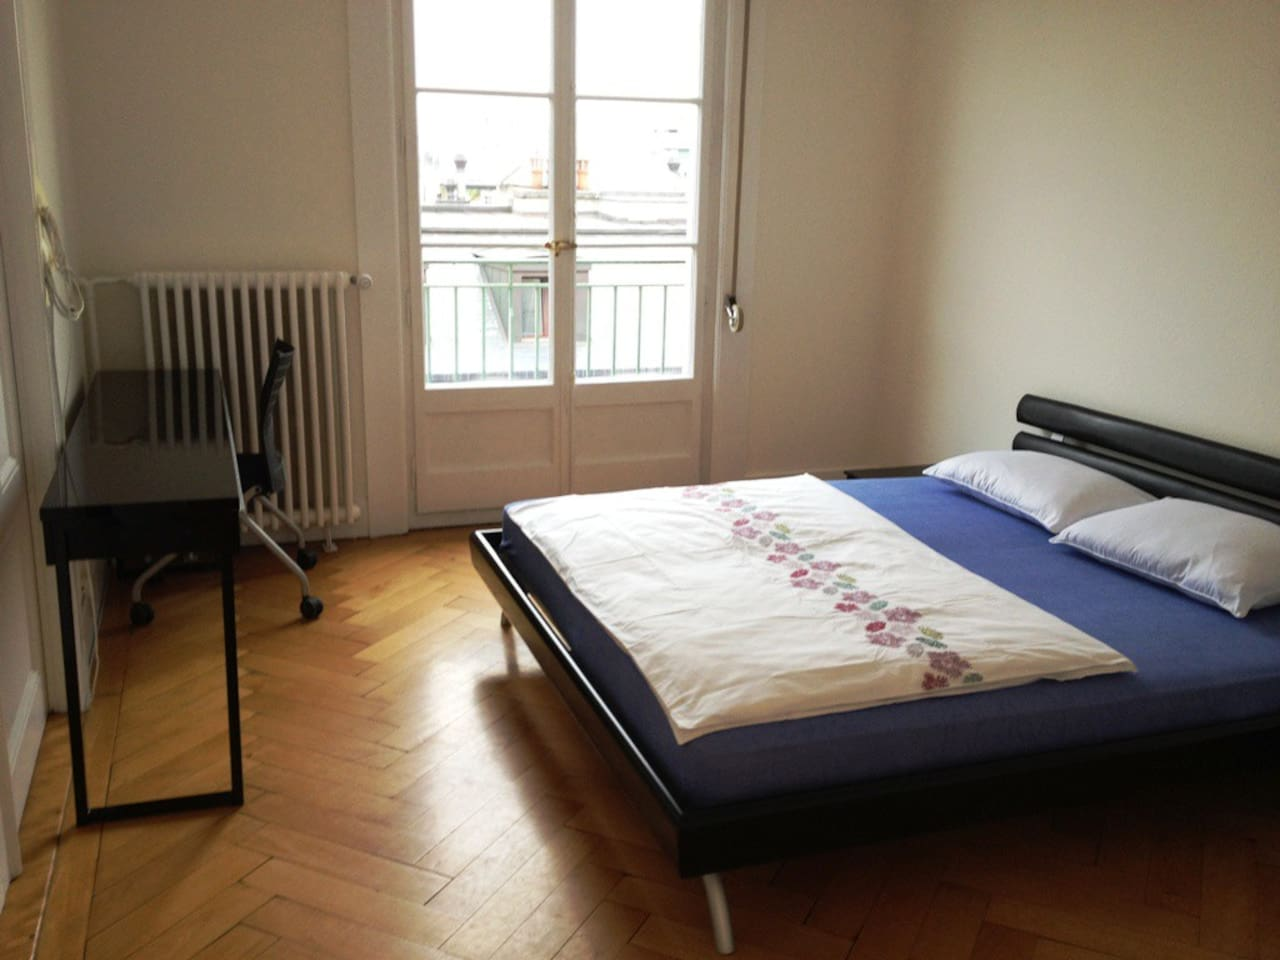 Furnished Room in a renovated apt.